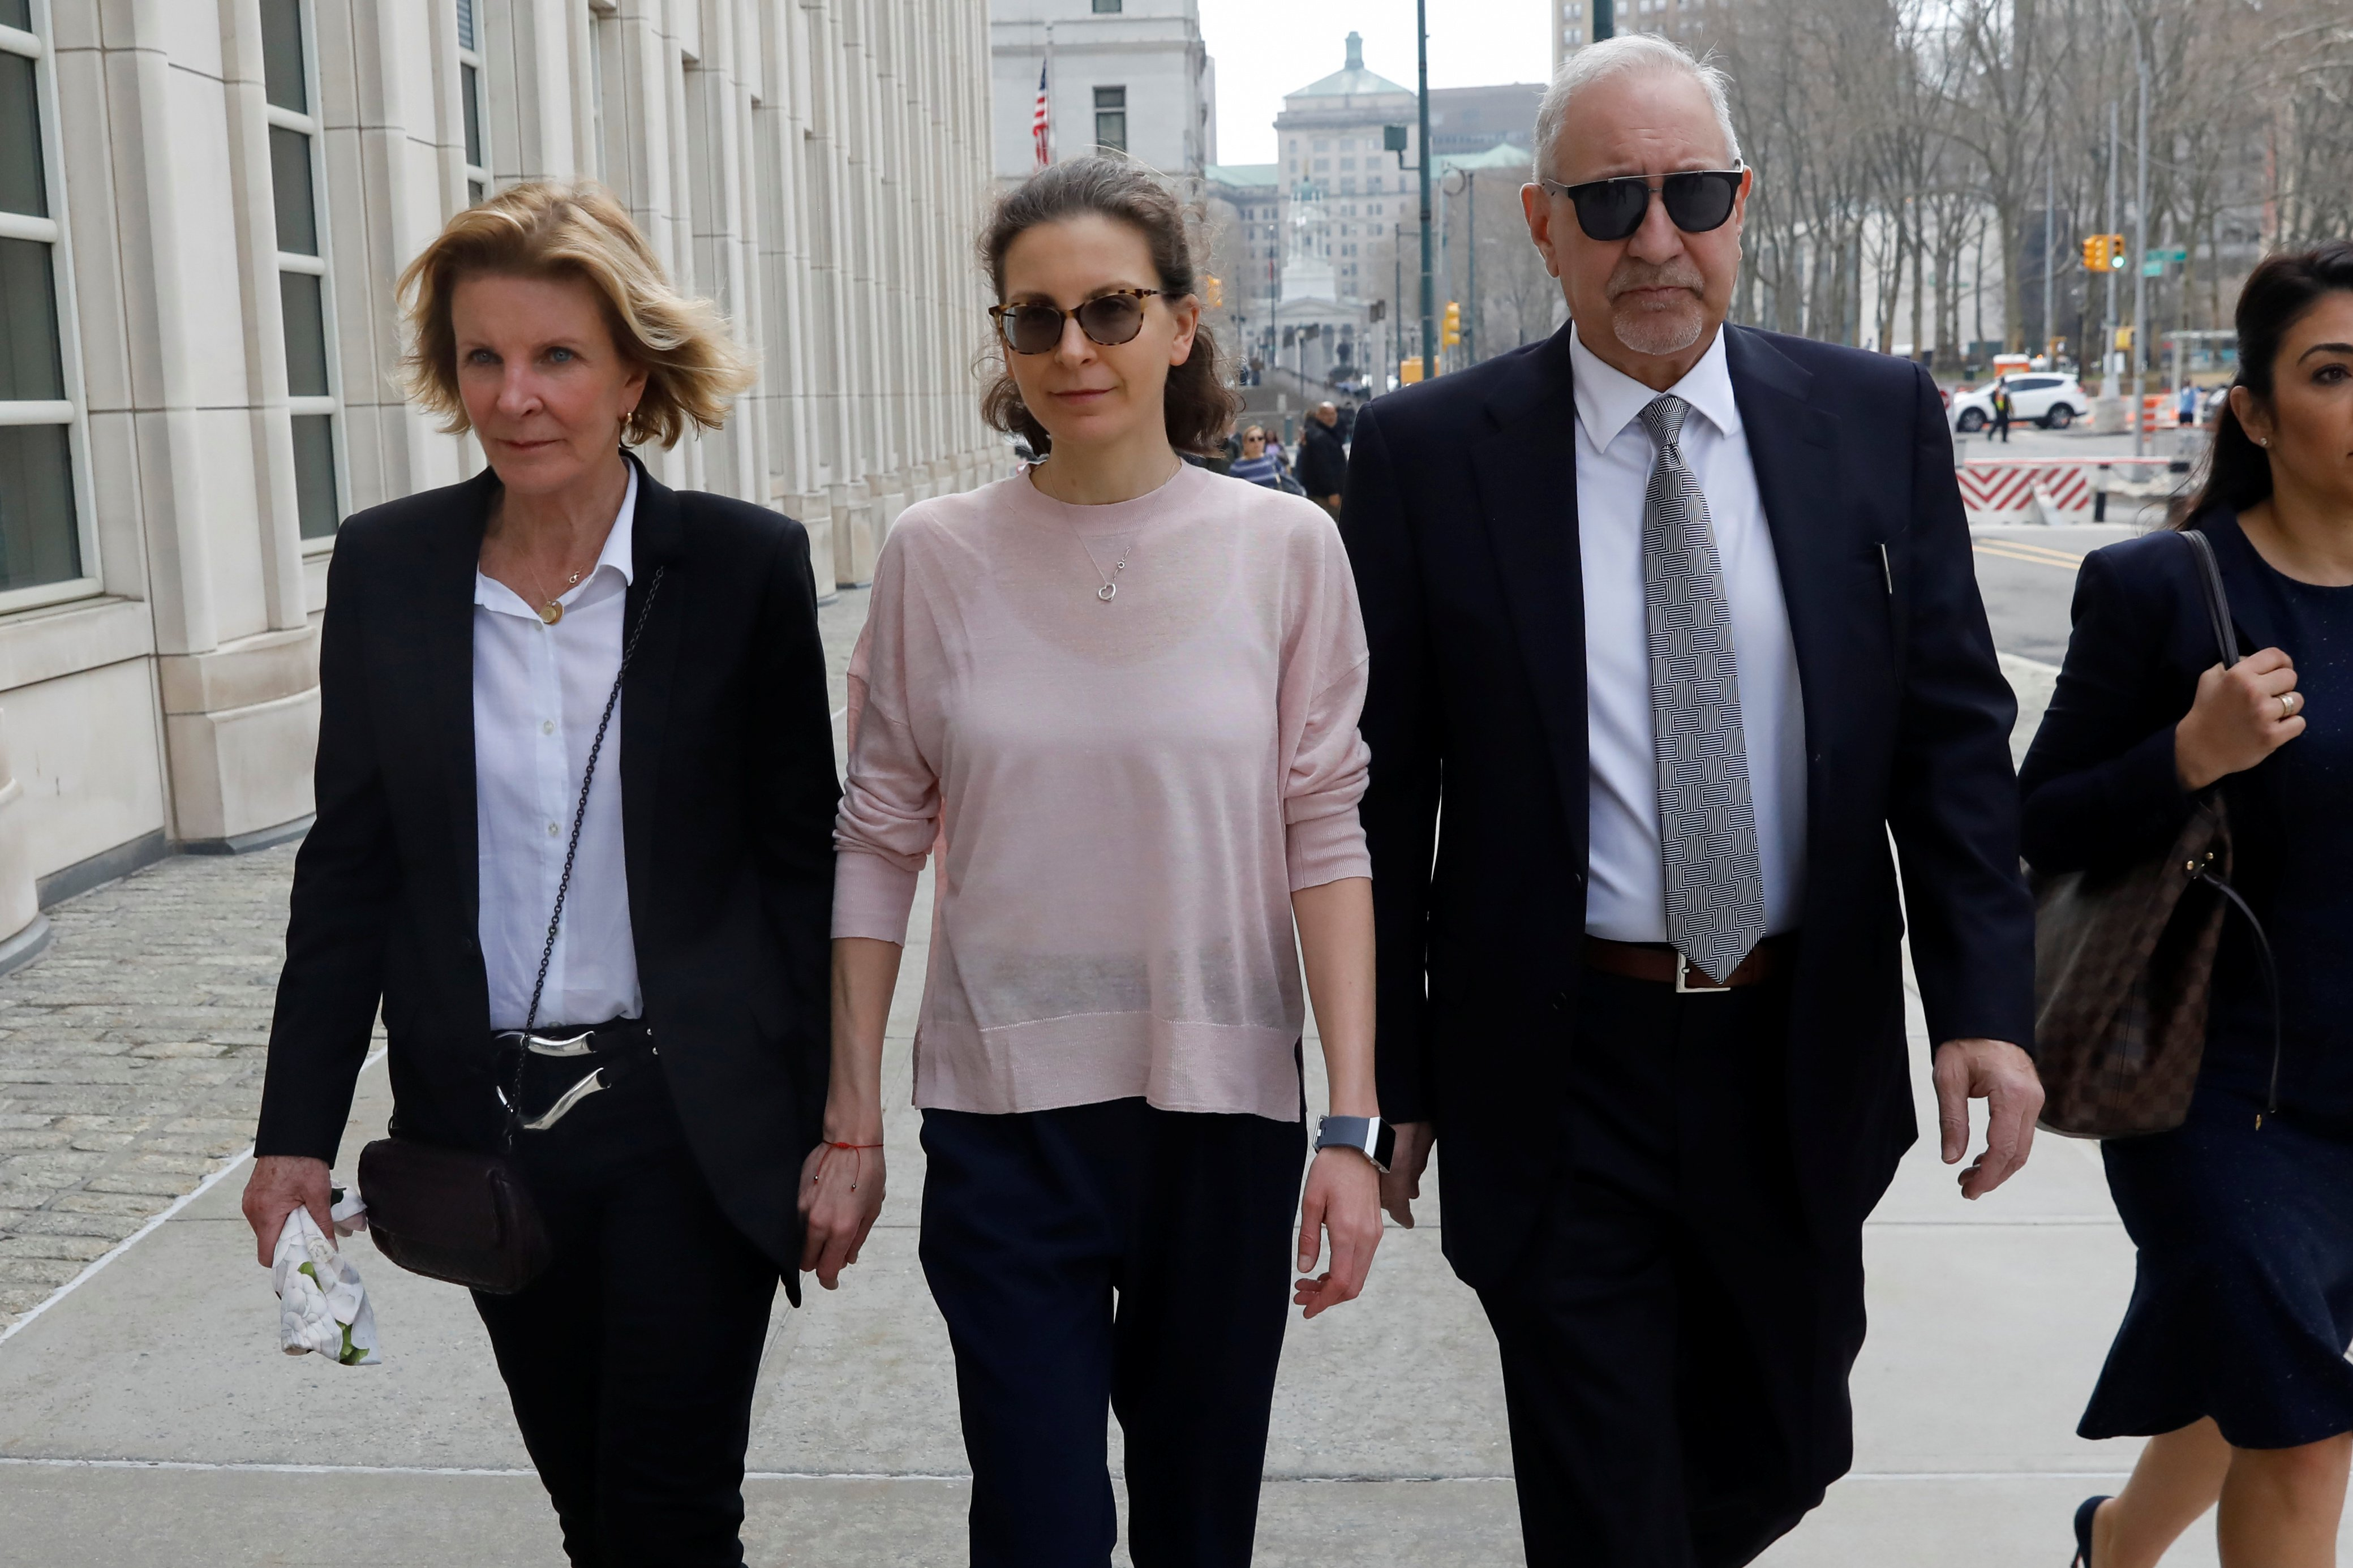 Clare Bronfman, an heiress of the Seagram's liquor empire, arrives at the Brooklyn Federal Courthouse to face charges regarding sex trafficking and racketeering related to the Nxivm cult case in New York, U.S., April 8, 2019. REUTERS/Shannon Stapleton - RC17567F4AF0